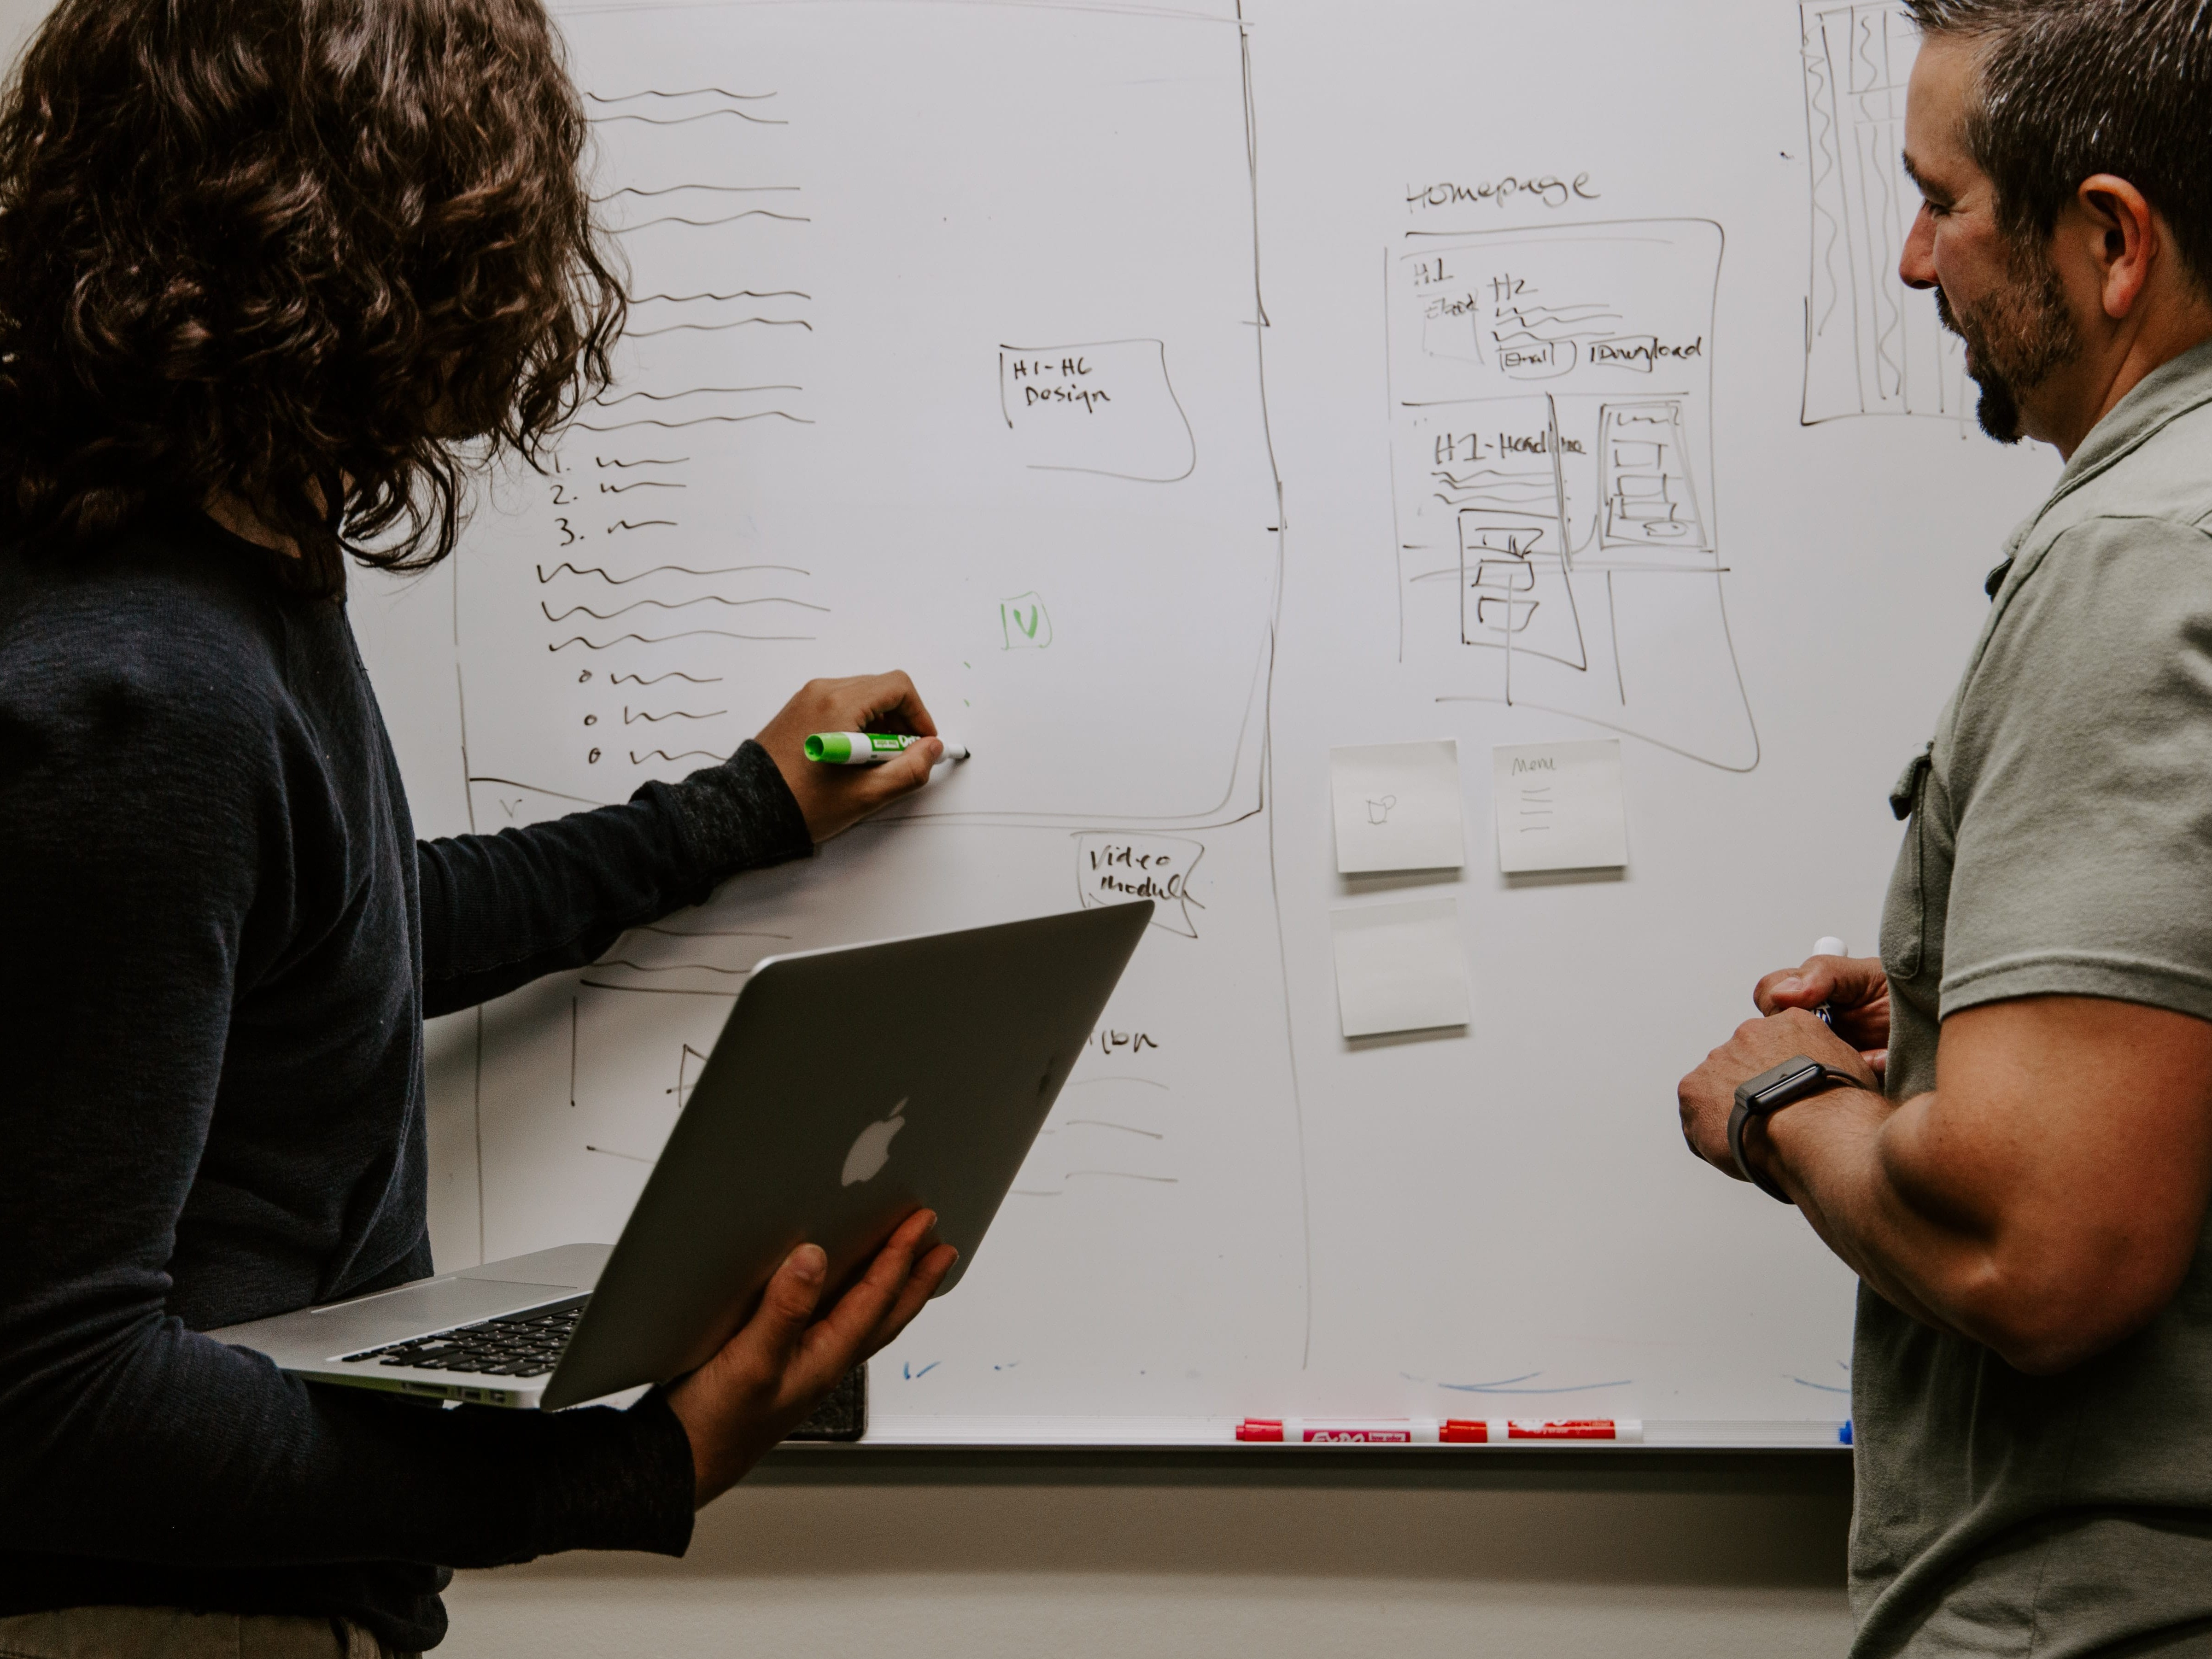 Two coworkers working on a whiteboard